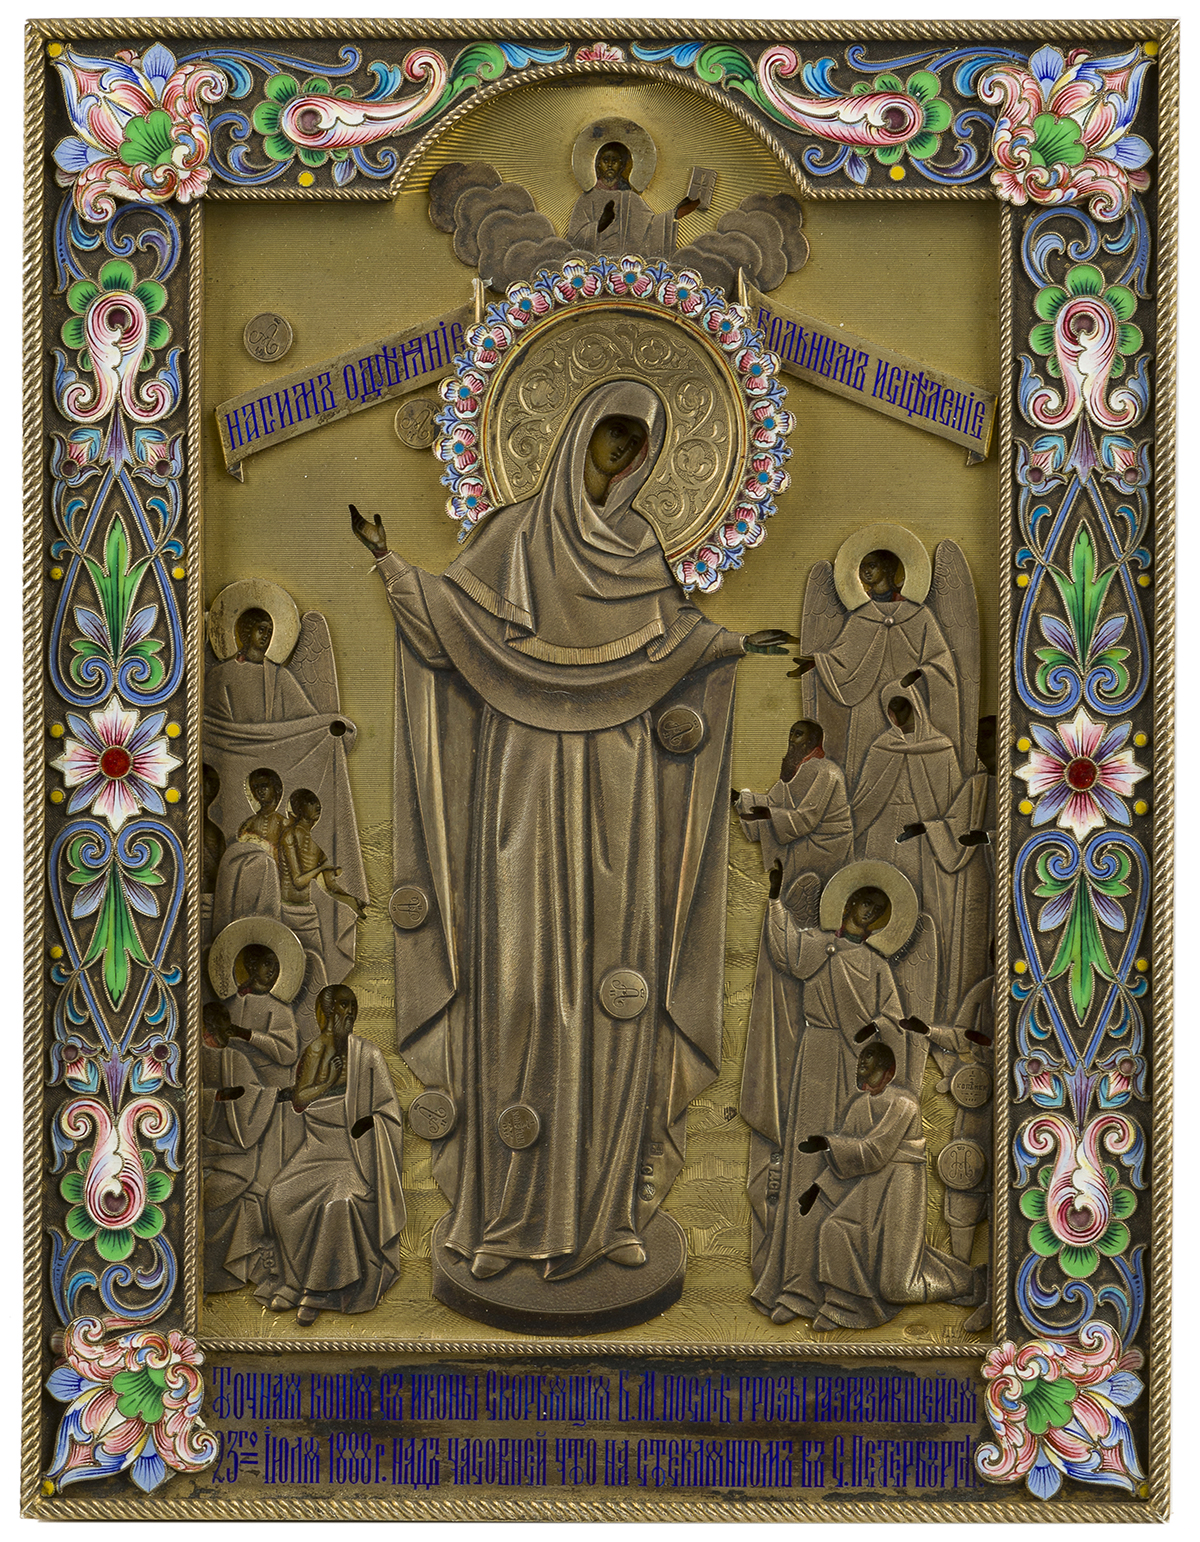 A silver-gilt and cloisonne enamel icon of the Mother of God